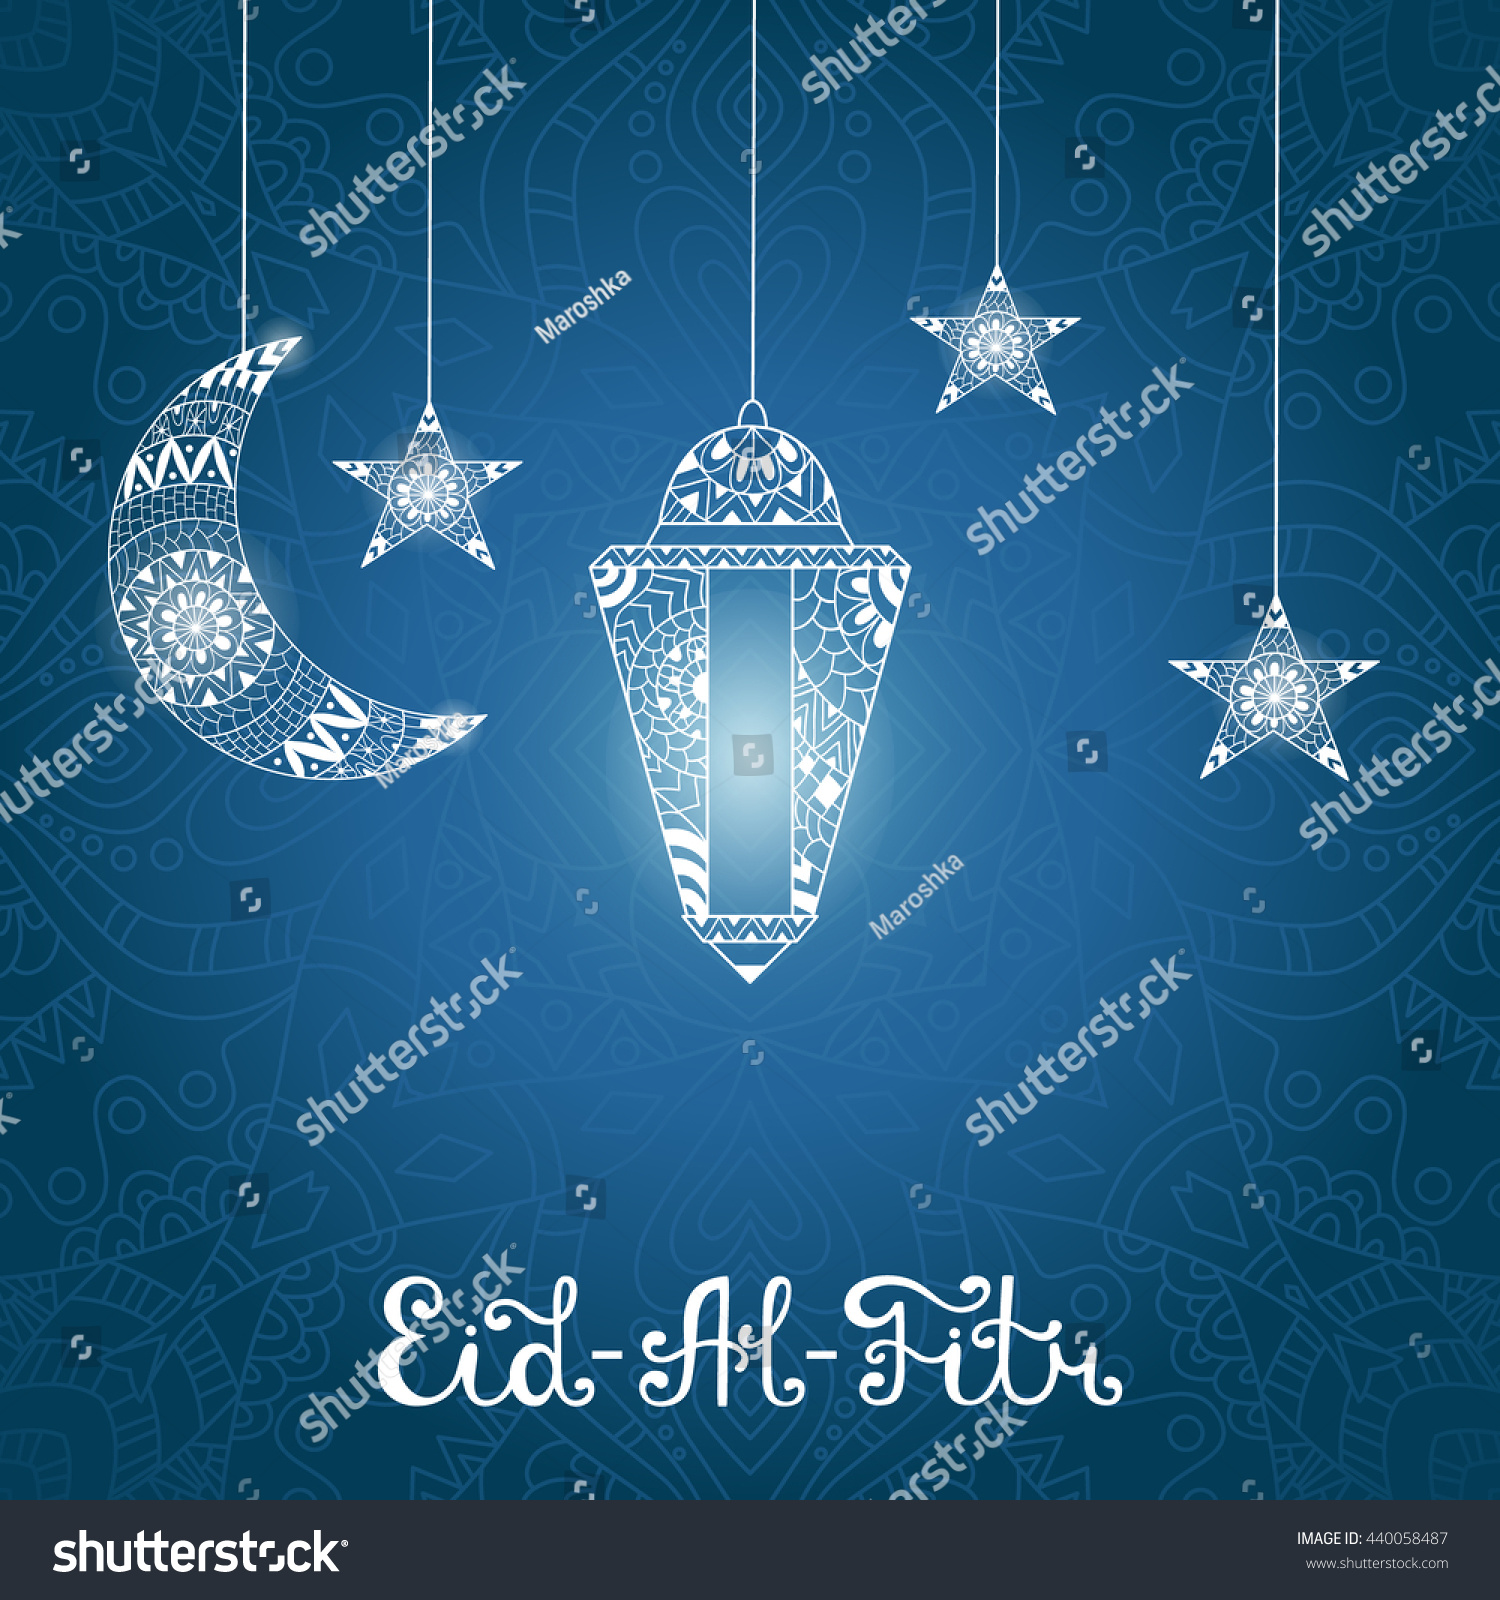 Vector illustration eid al fitr greeting stock vector 440058487 vector illustration eid al fitr greeting card with ornamental lamp ornate crescent moon and kristyandbryce Images